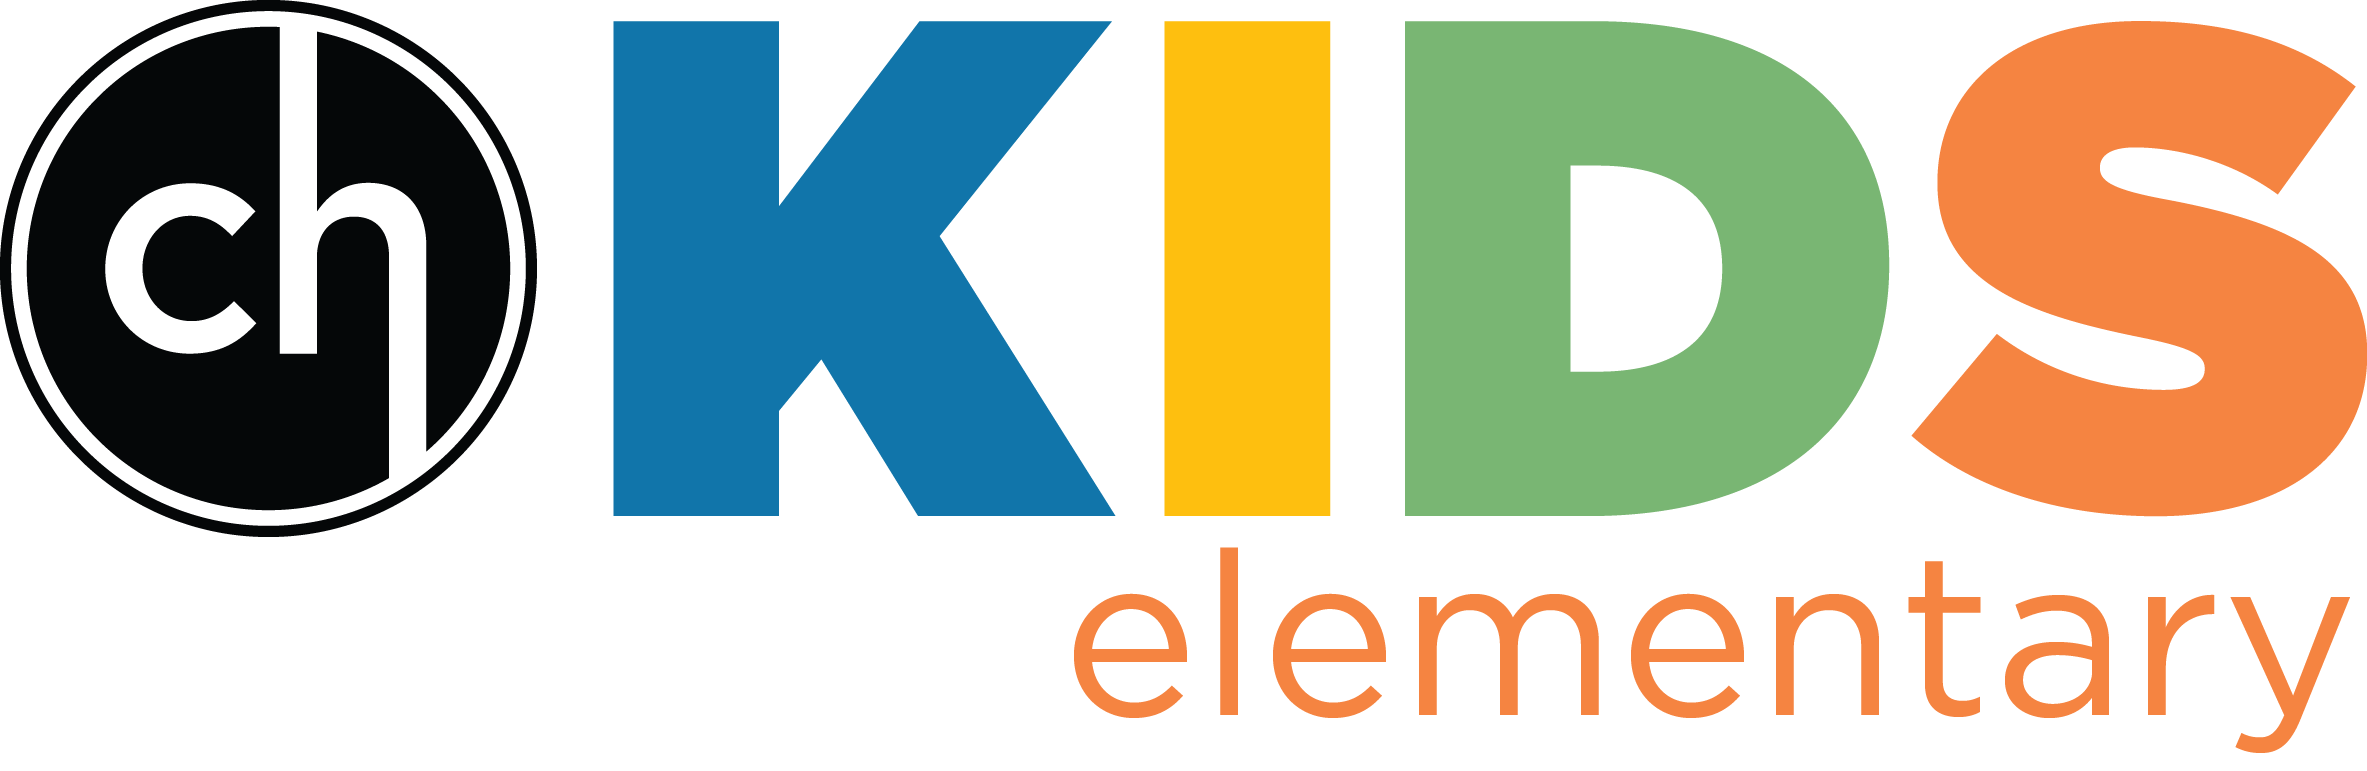 CH Kids Logo Elementary FINAL Color.png